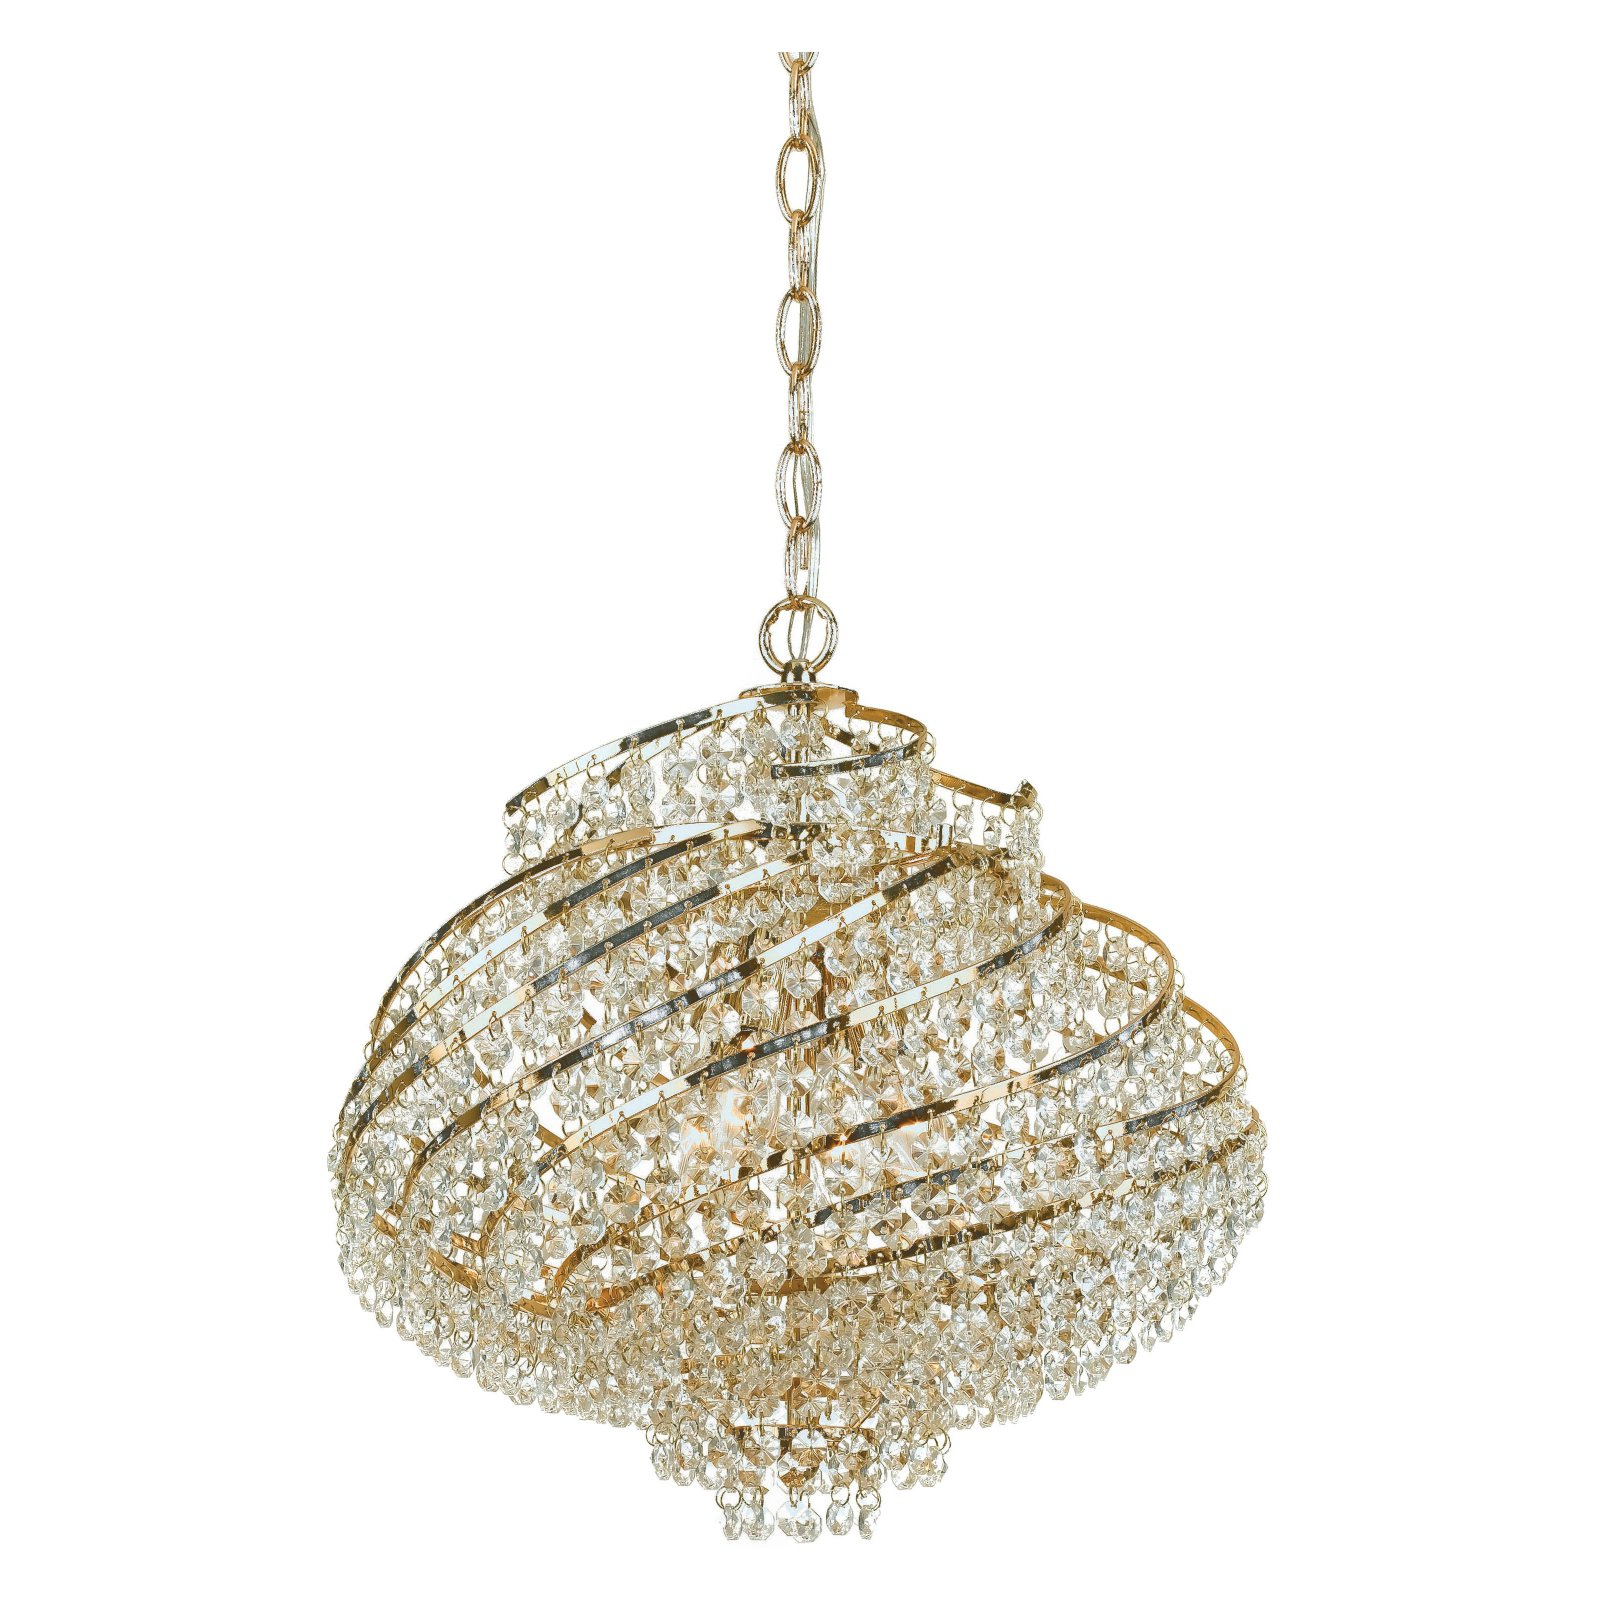 AF Lighting Lyric 4-Light Chandelier with Clear Glass Accents, Gold-Plated Brass